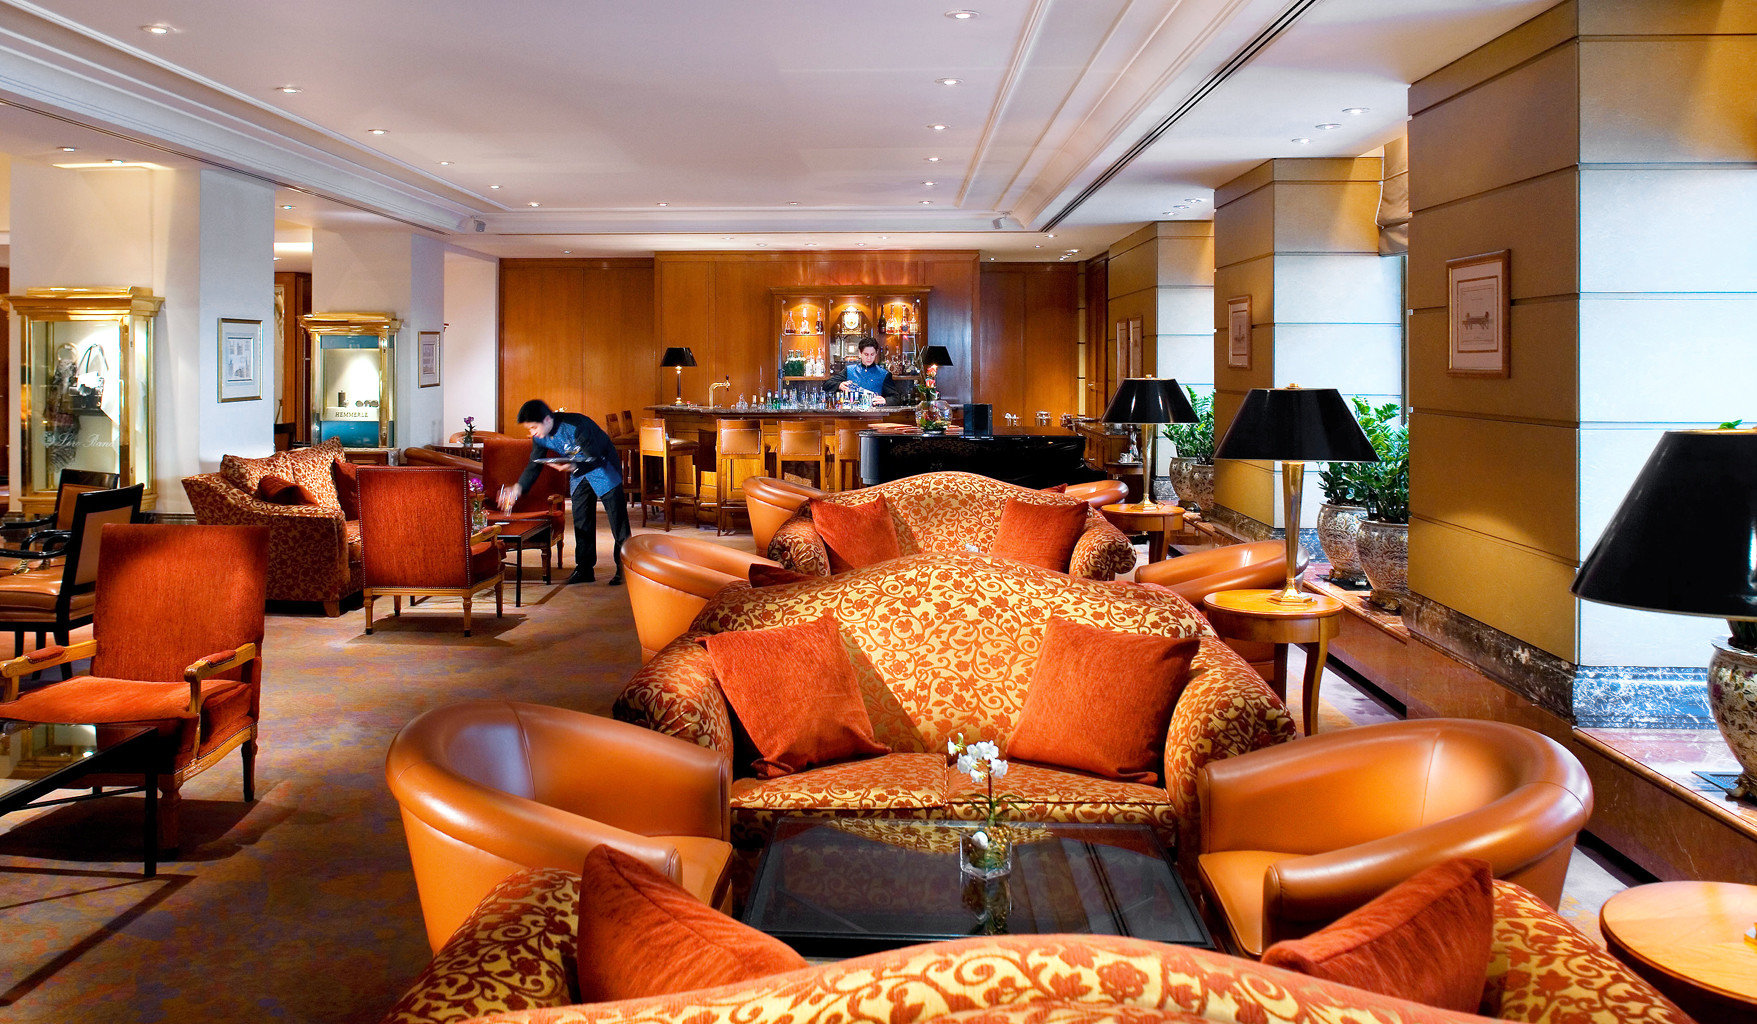 City Dining Drink Eat europe Germany Hotels Lounge Luxury Munich indoor ceiling wall room table Living floor chair property living room estate Suite Lobby furniture Resort home interior design real estate area decorated